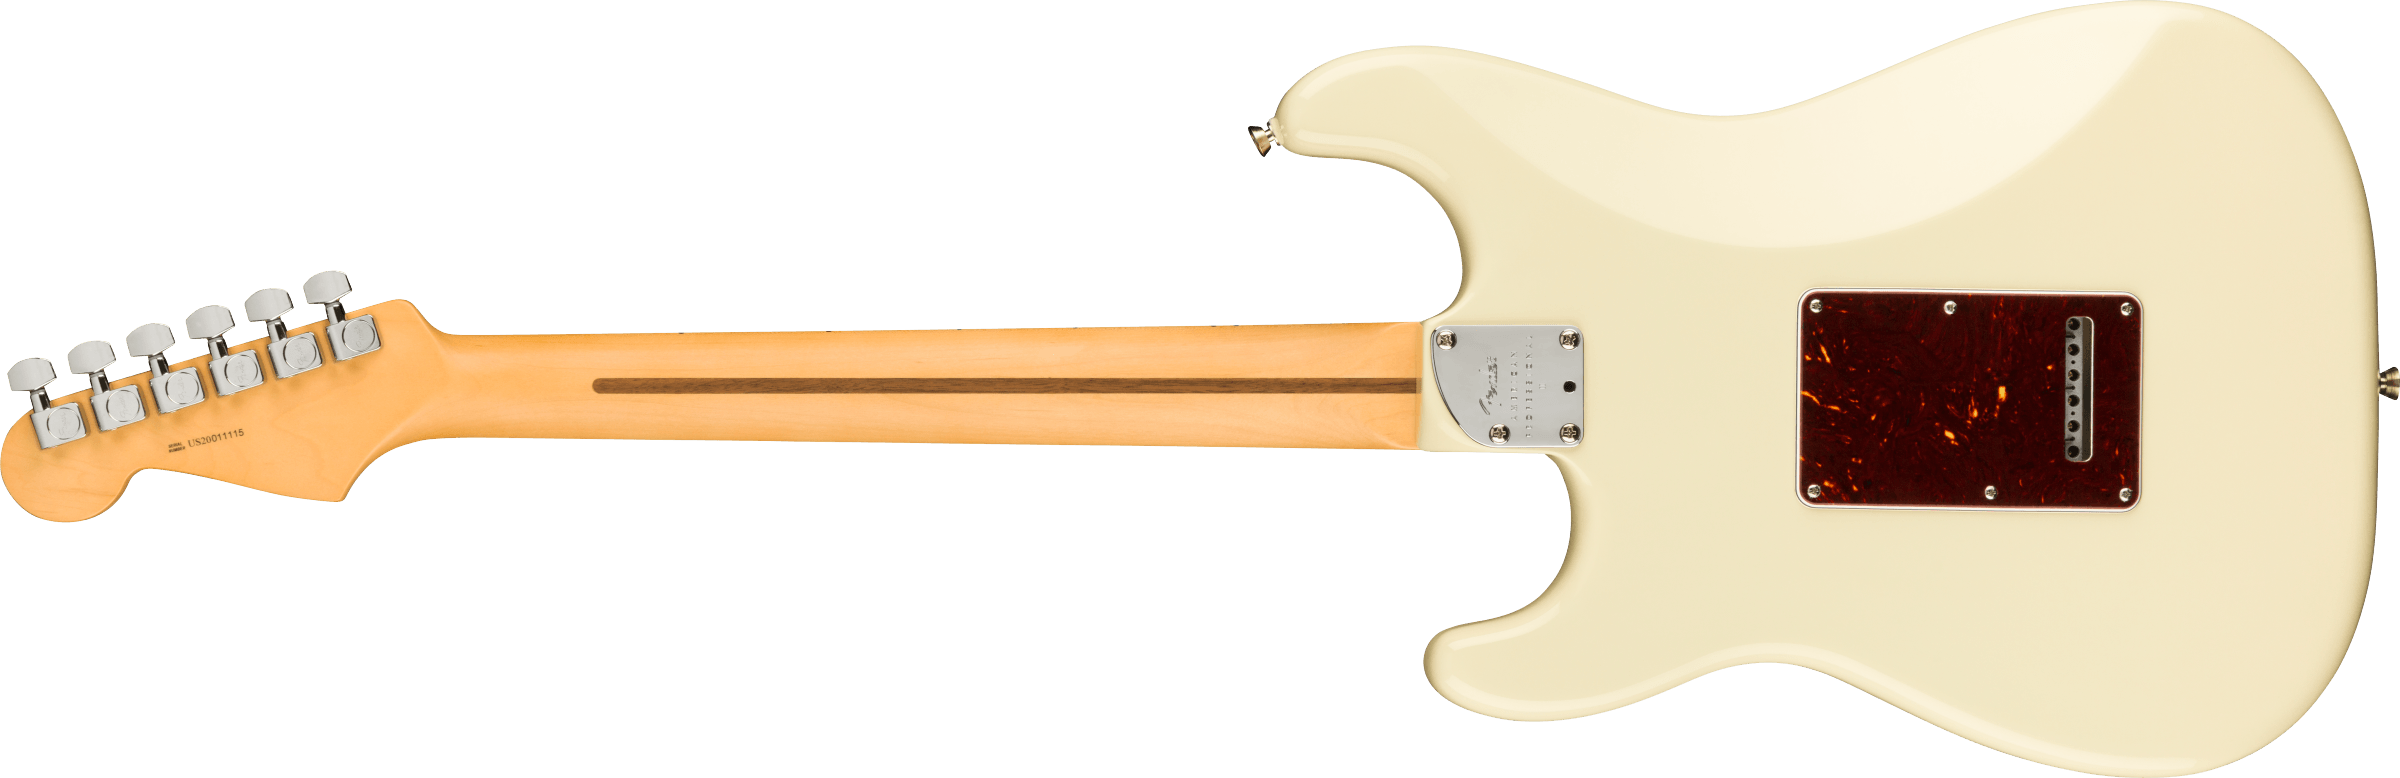 American Professional II Stratocaster Maple Fingerboard, Olympic White追加画像